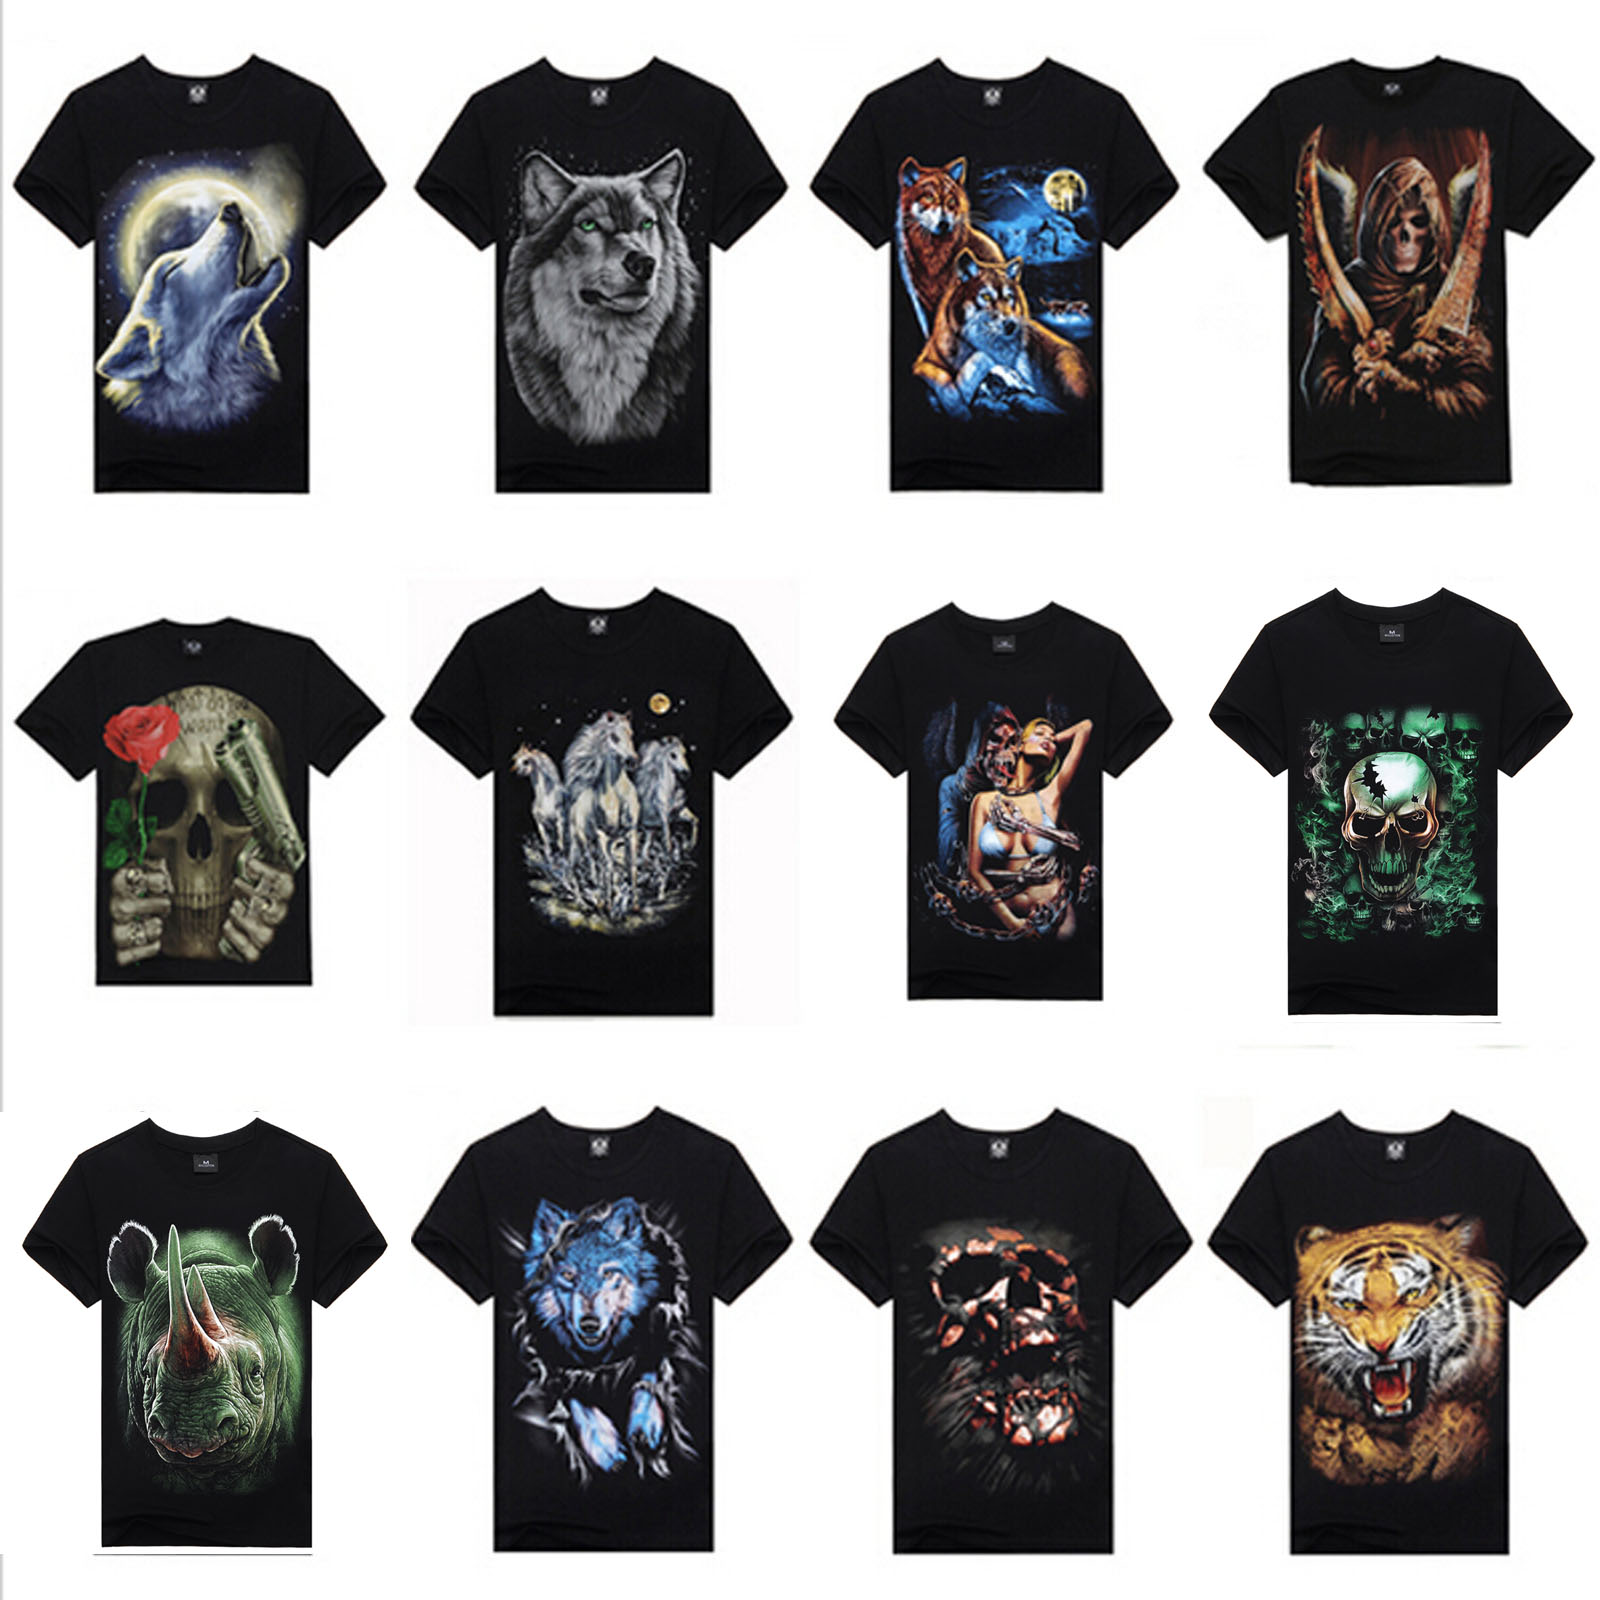 652098f49f61 Top Quality Summer New Brand Men s Cotton Short Sleeve T-Shirt Fashion  O-Neck Casual Skull Wolf  73175